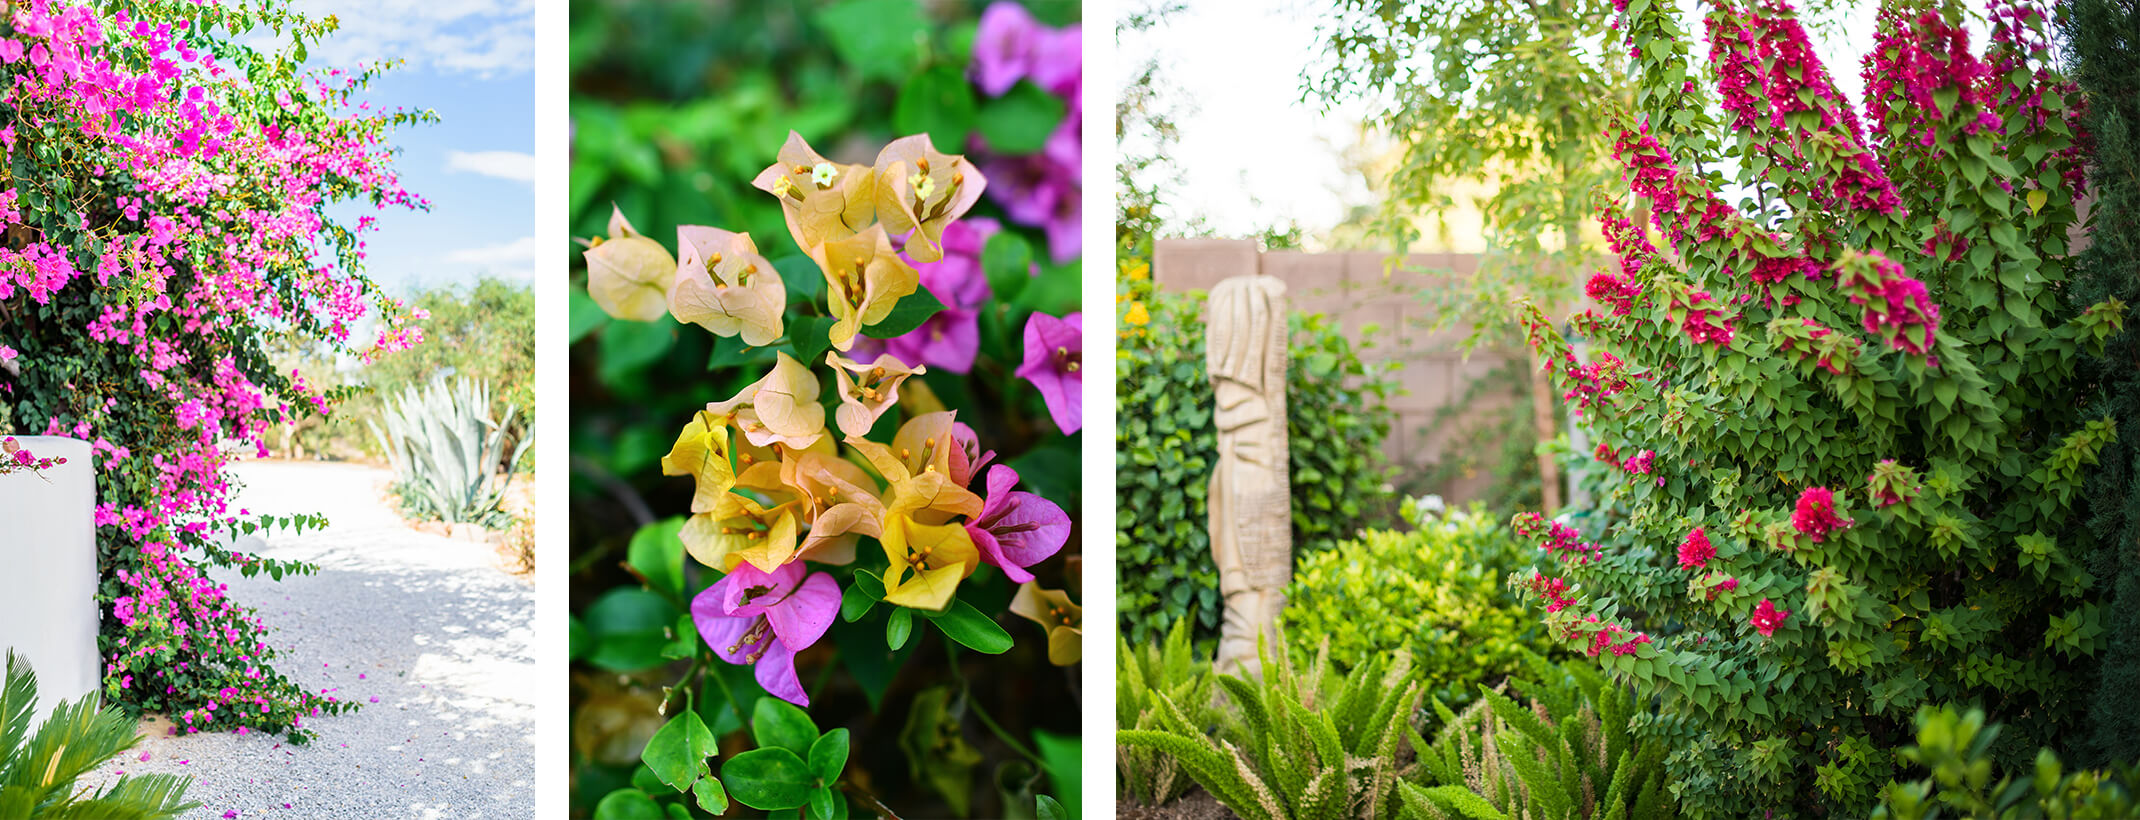 3 images - pink bougainvillea growing on path near white stucco wall and agave, closeup of purple and yellow bougainvillea, and a lush desert yard that includes a statue and pink bougainvillea shrub